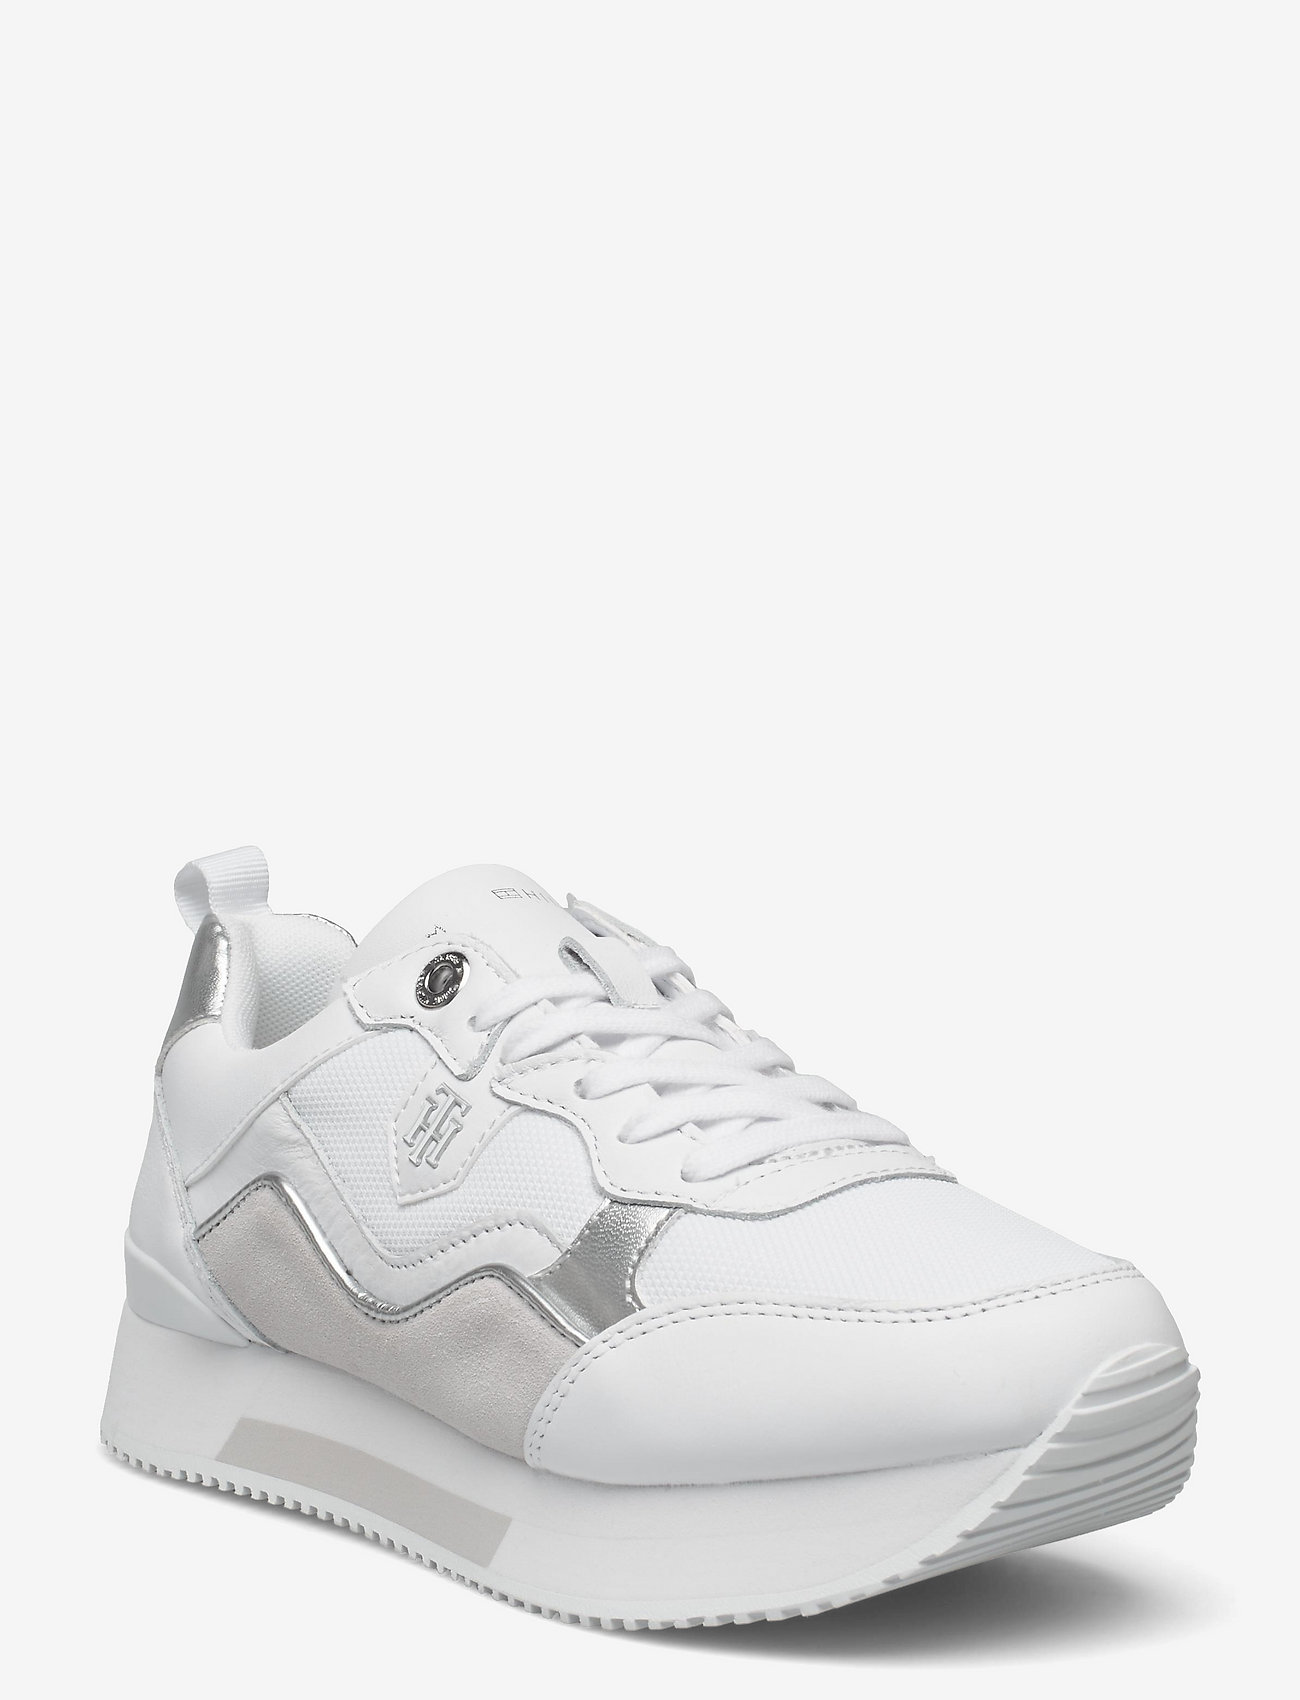 Tommy Hilfiger - MATERIAL MIX ACTIVE CITY SNEAKER - low top sneakers - white - 0